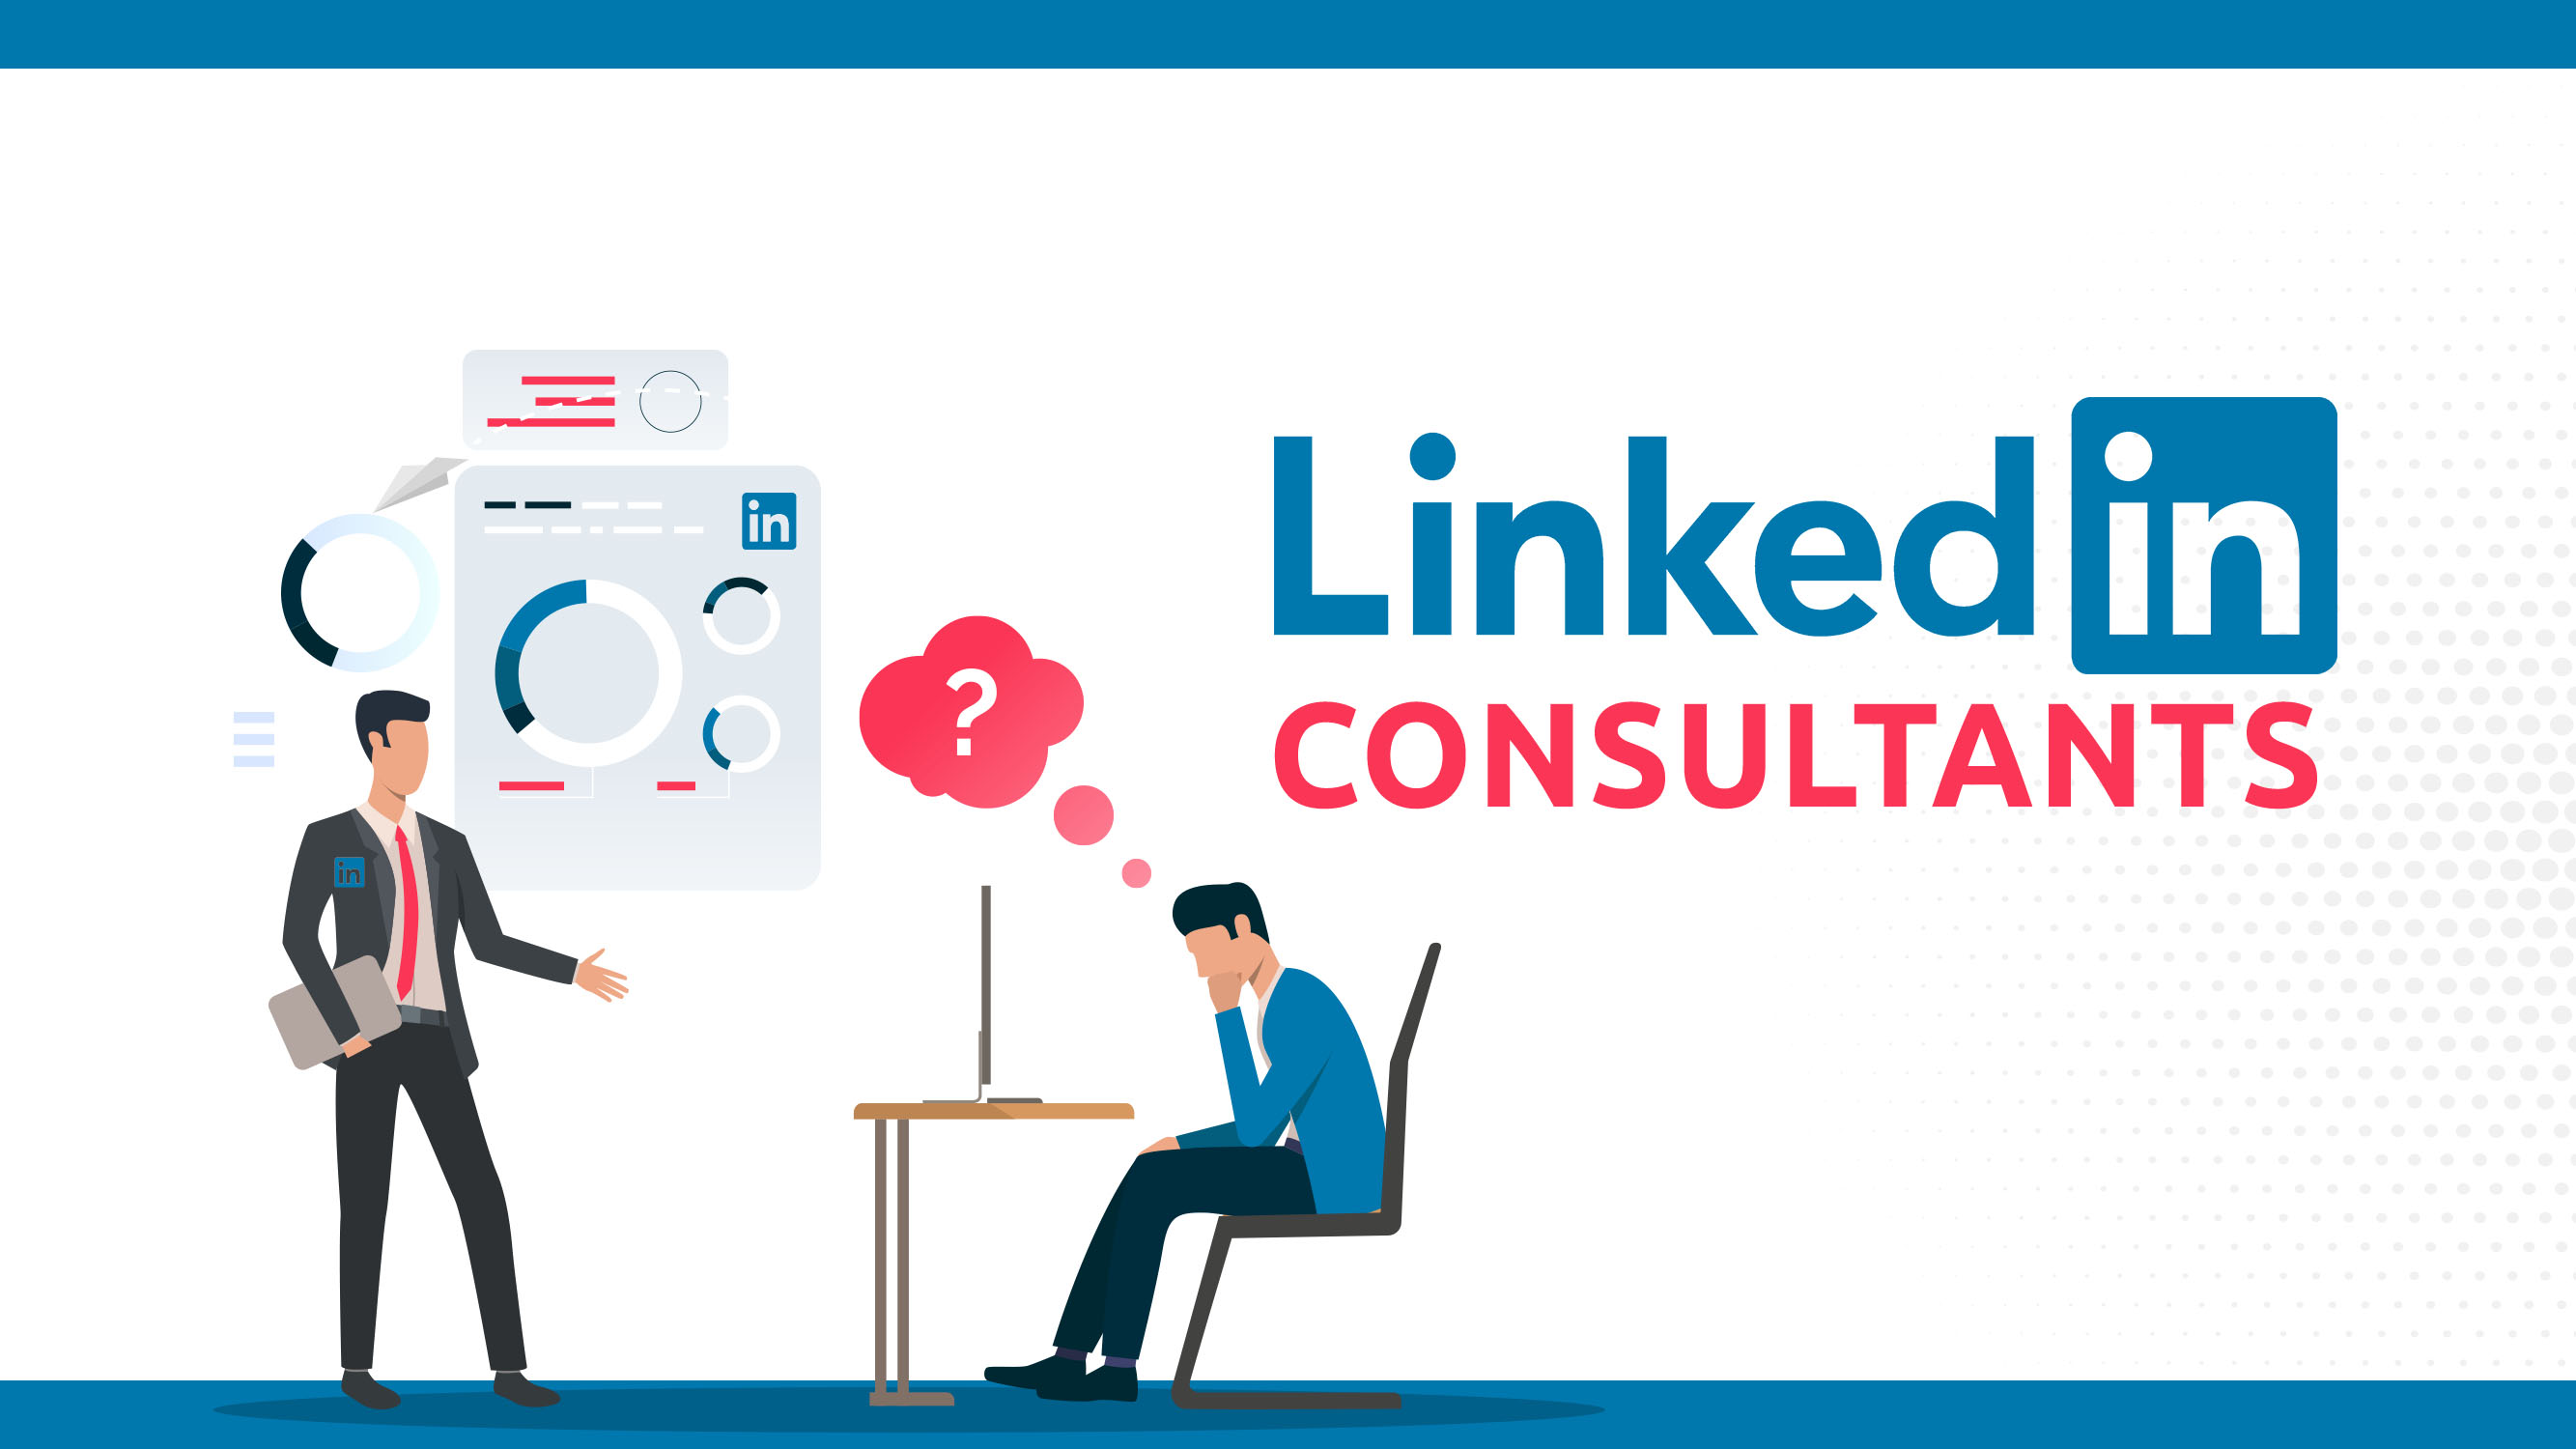 LinkedIn Consultants: Do You Need Them?